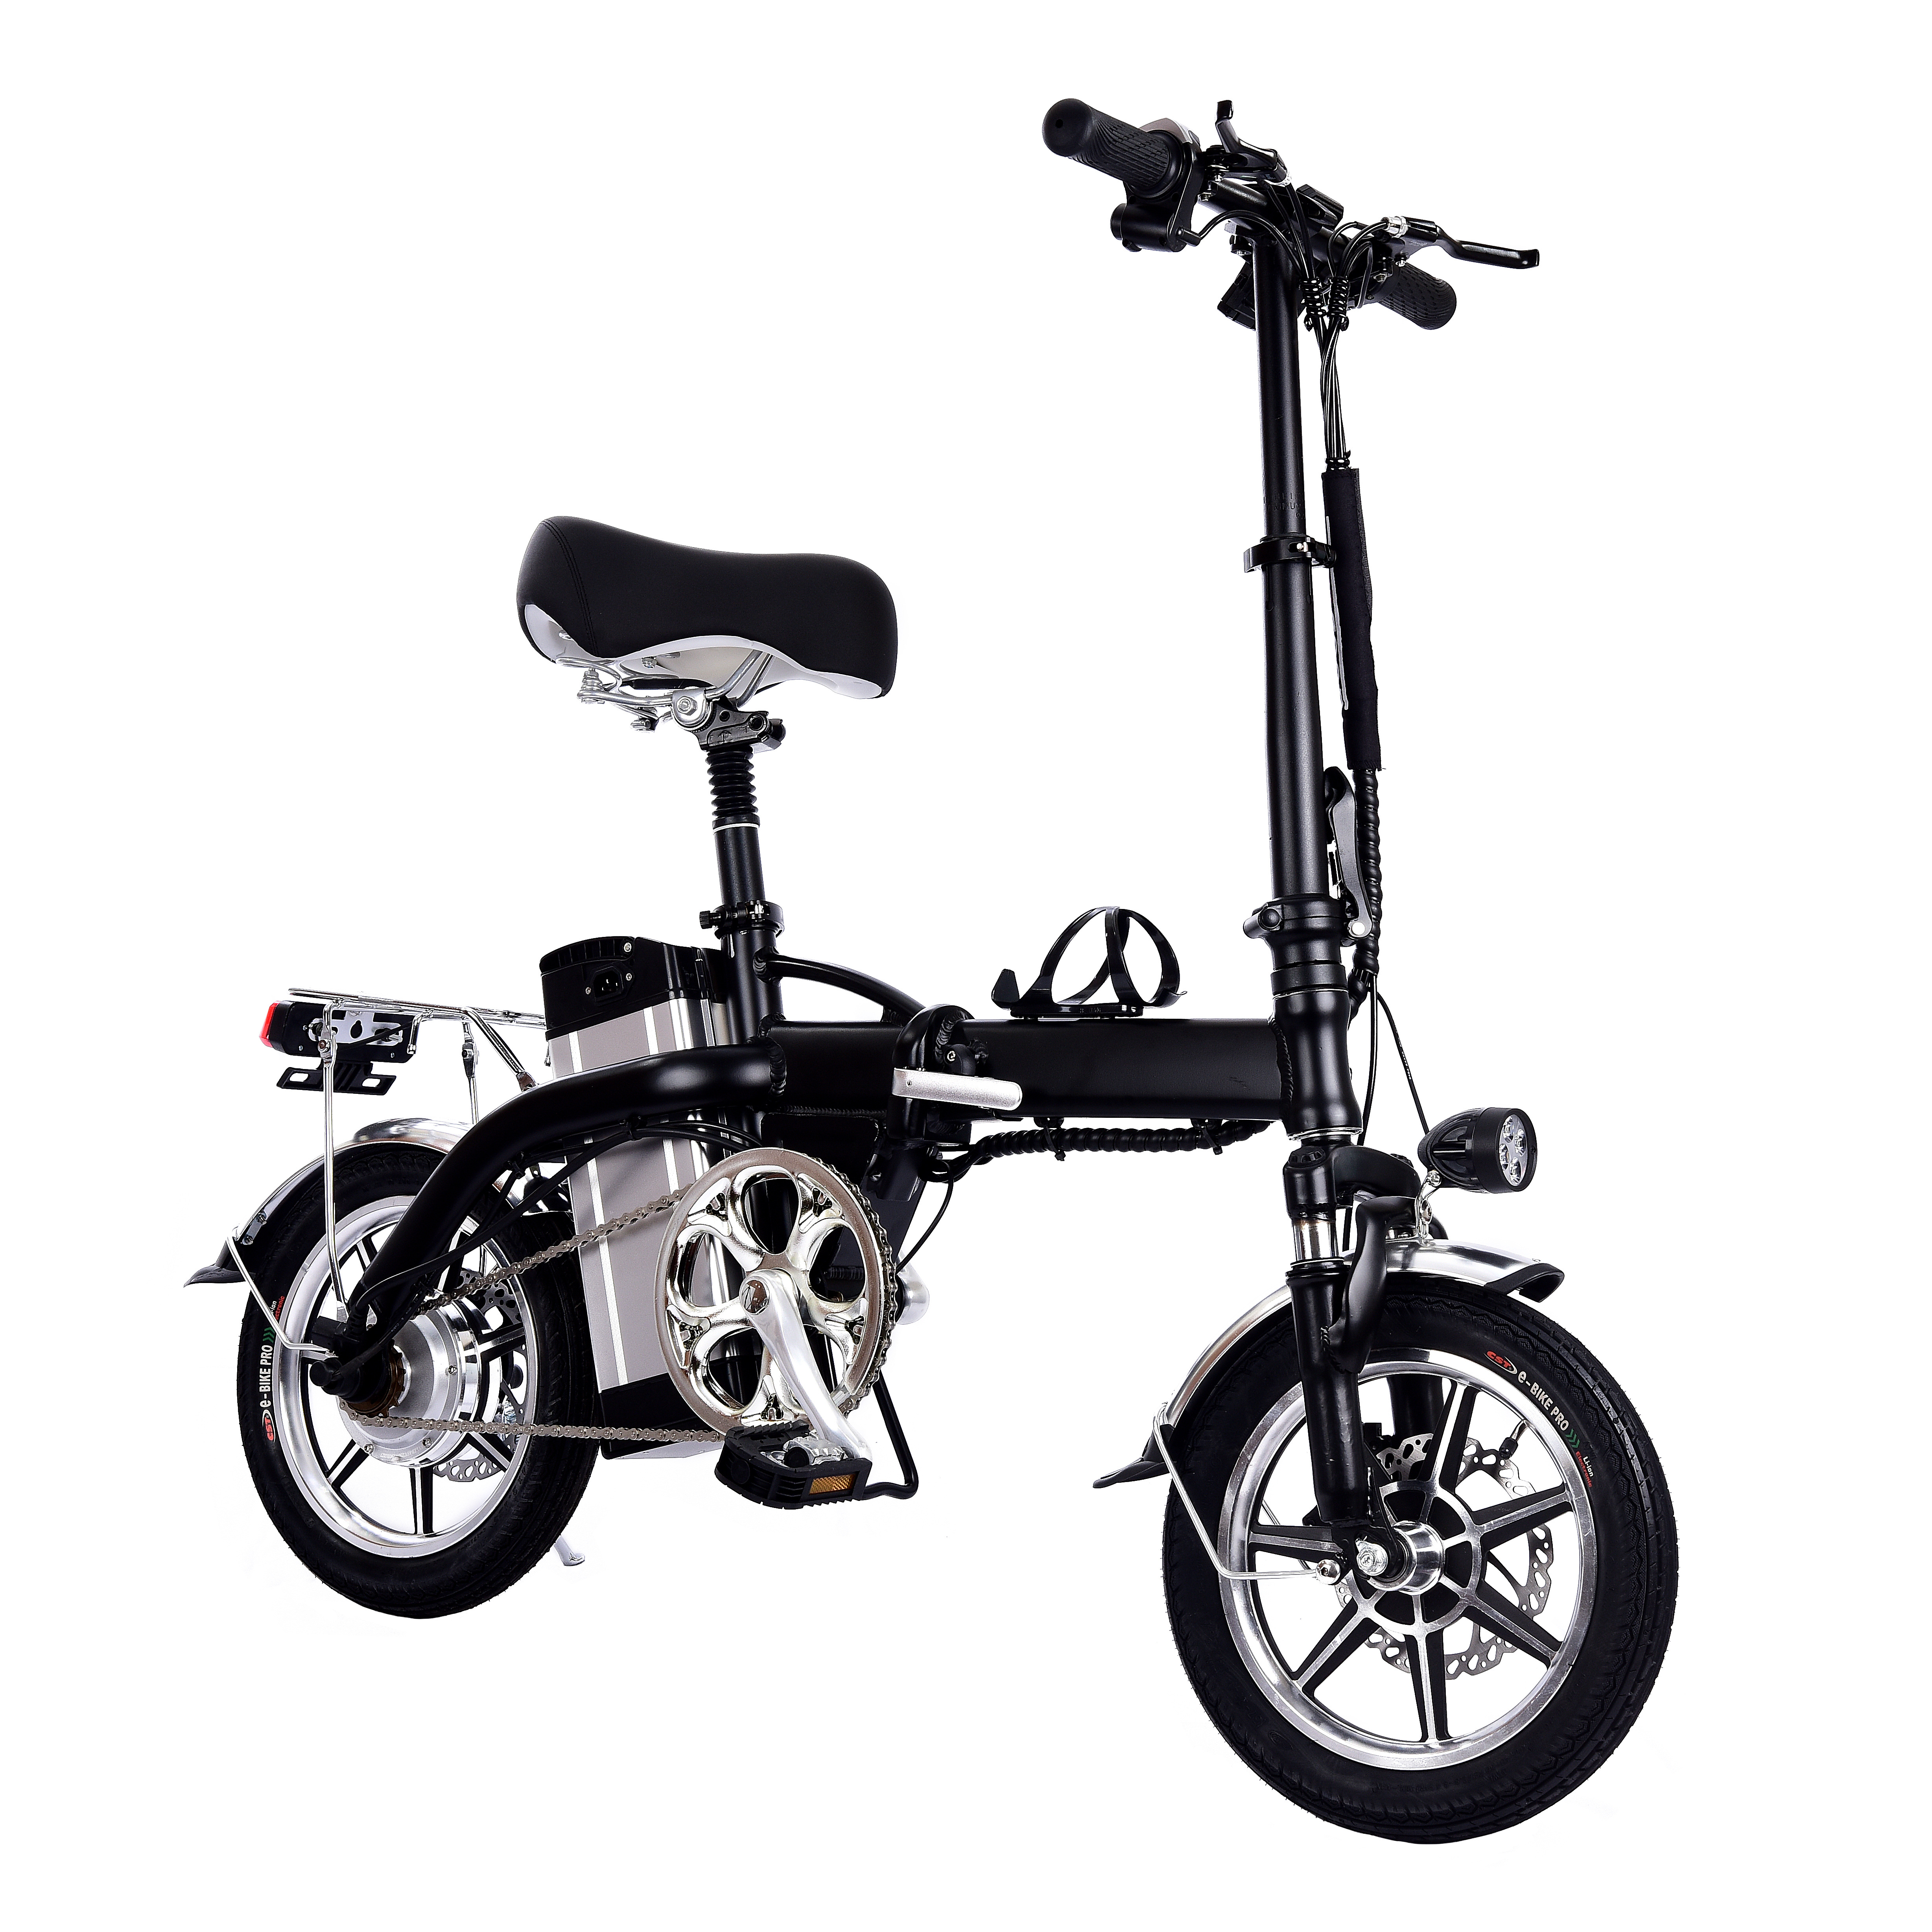 Portable Electric Scooter Folding 2 Wheels Electric Bicycle 10Ah 14 Inch 350W 48V Max 25KM/H Adults Electric Bicycle